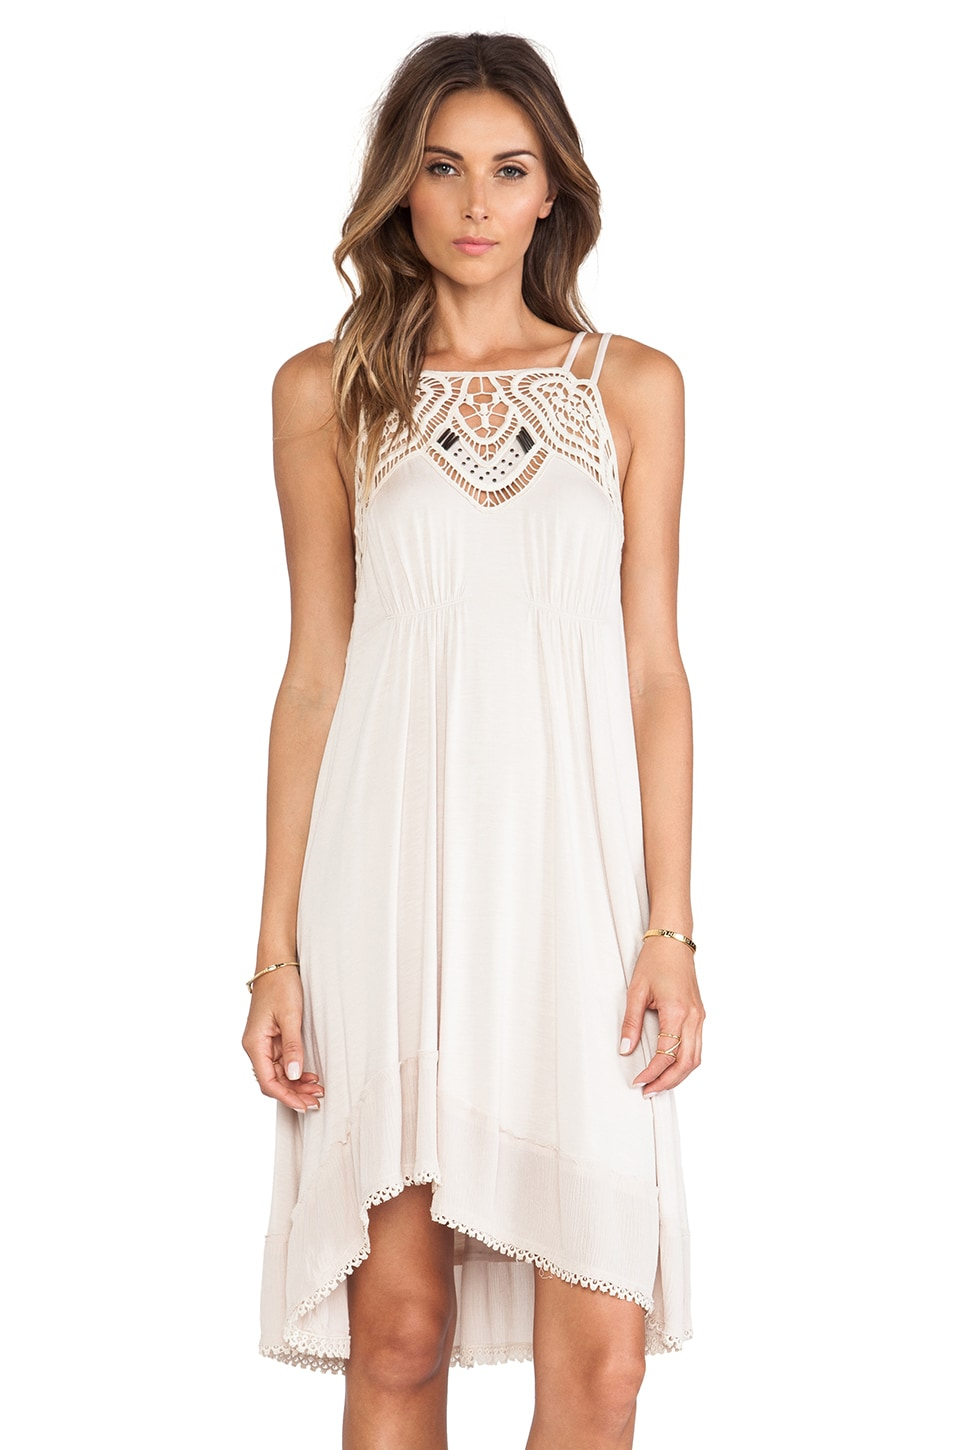 Free People Star Lace Dress in Sand